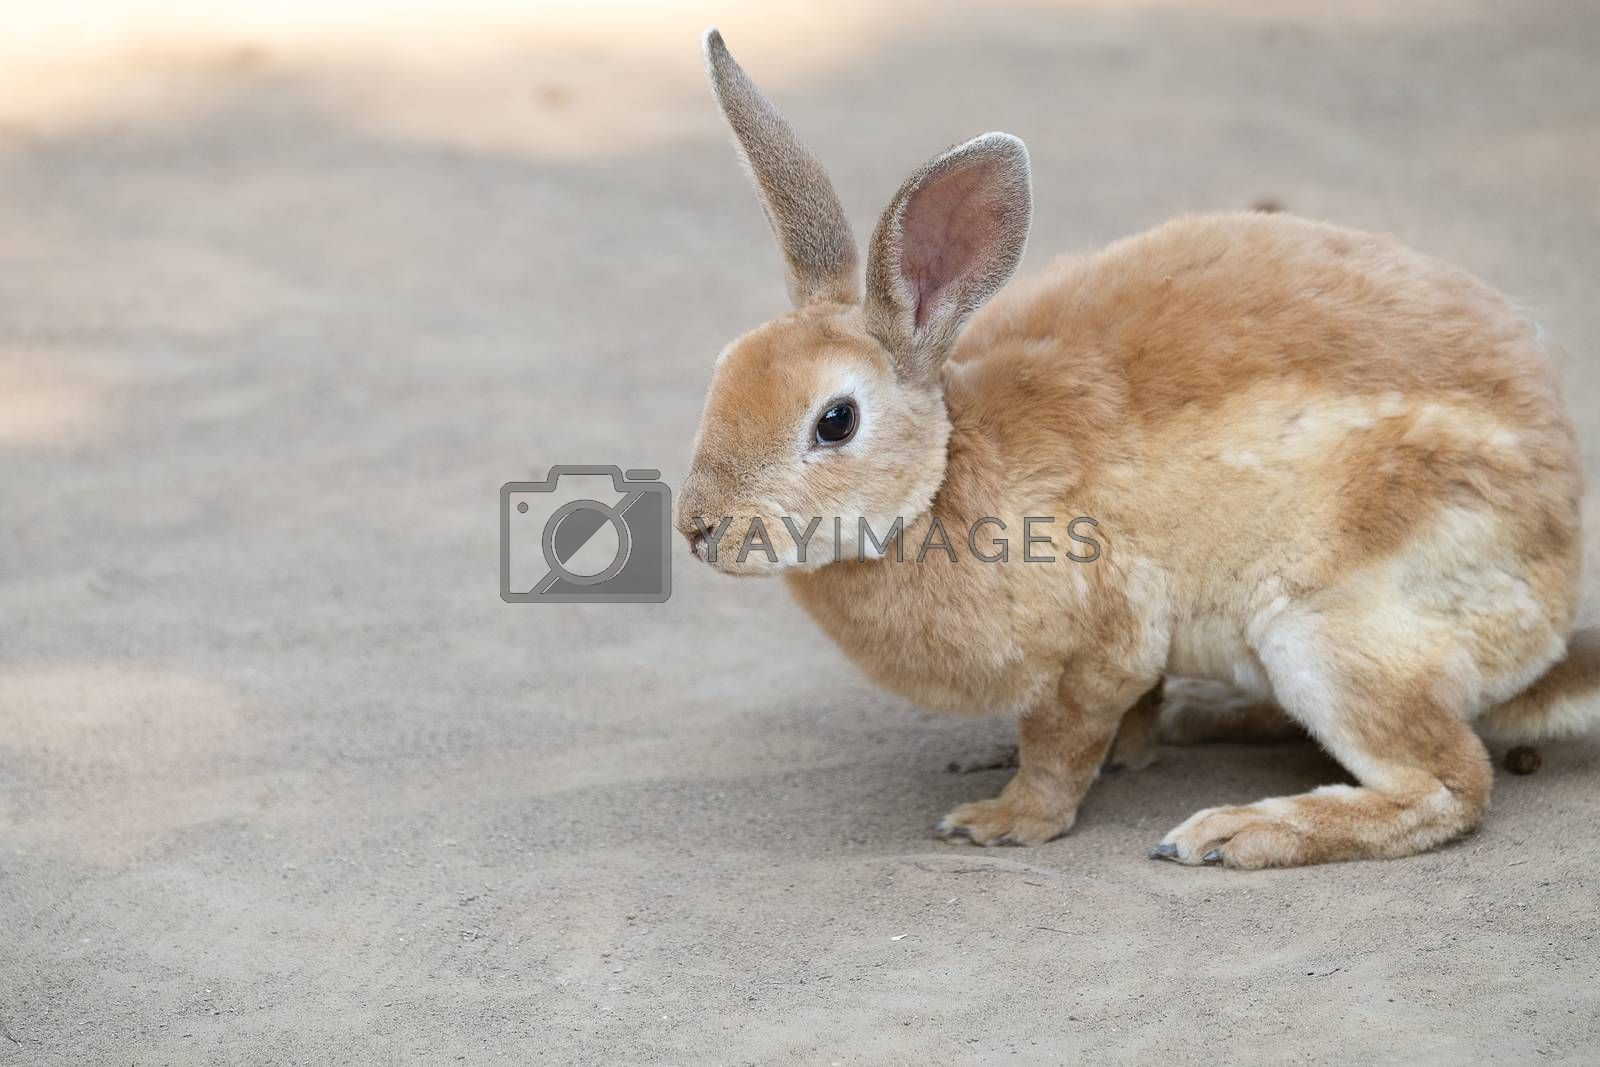 Cute little rabbit with long ears sitting on the ground. Selective focusing.